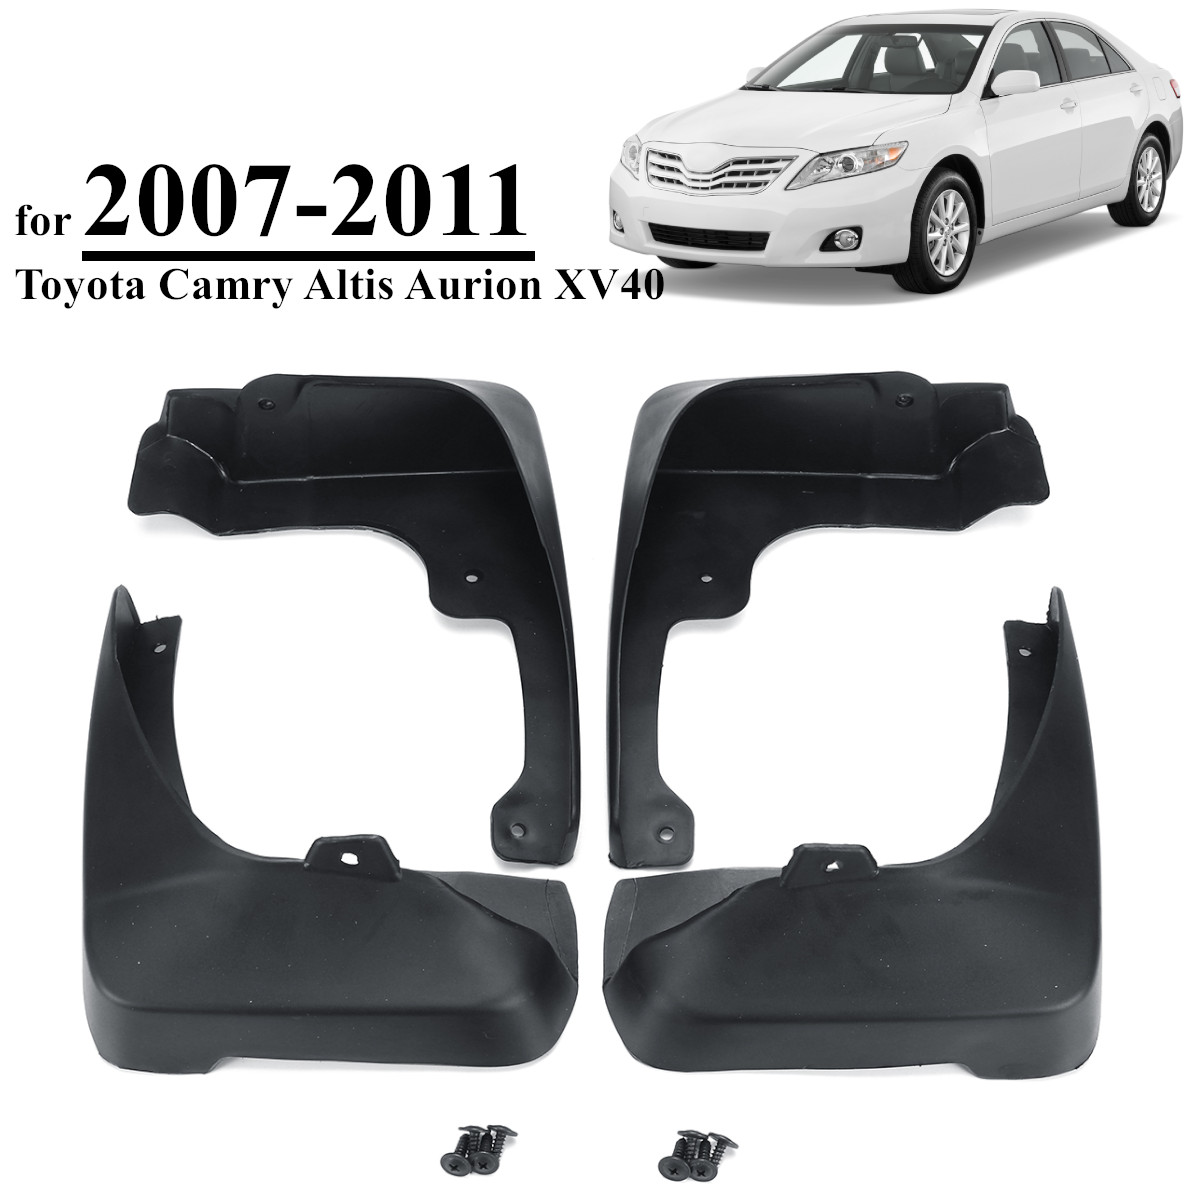 สำหรับ Toyota Camry Altis Aurion XV40 2007-2011 รถโคลน Fender Mudguards Mudflaps Splash Guards